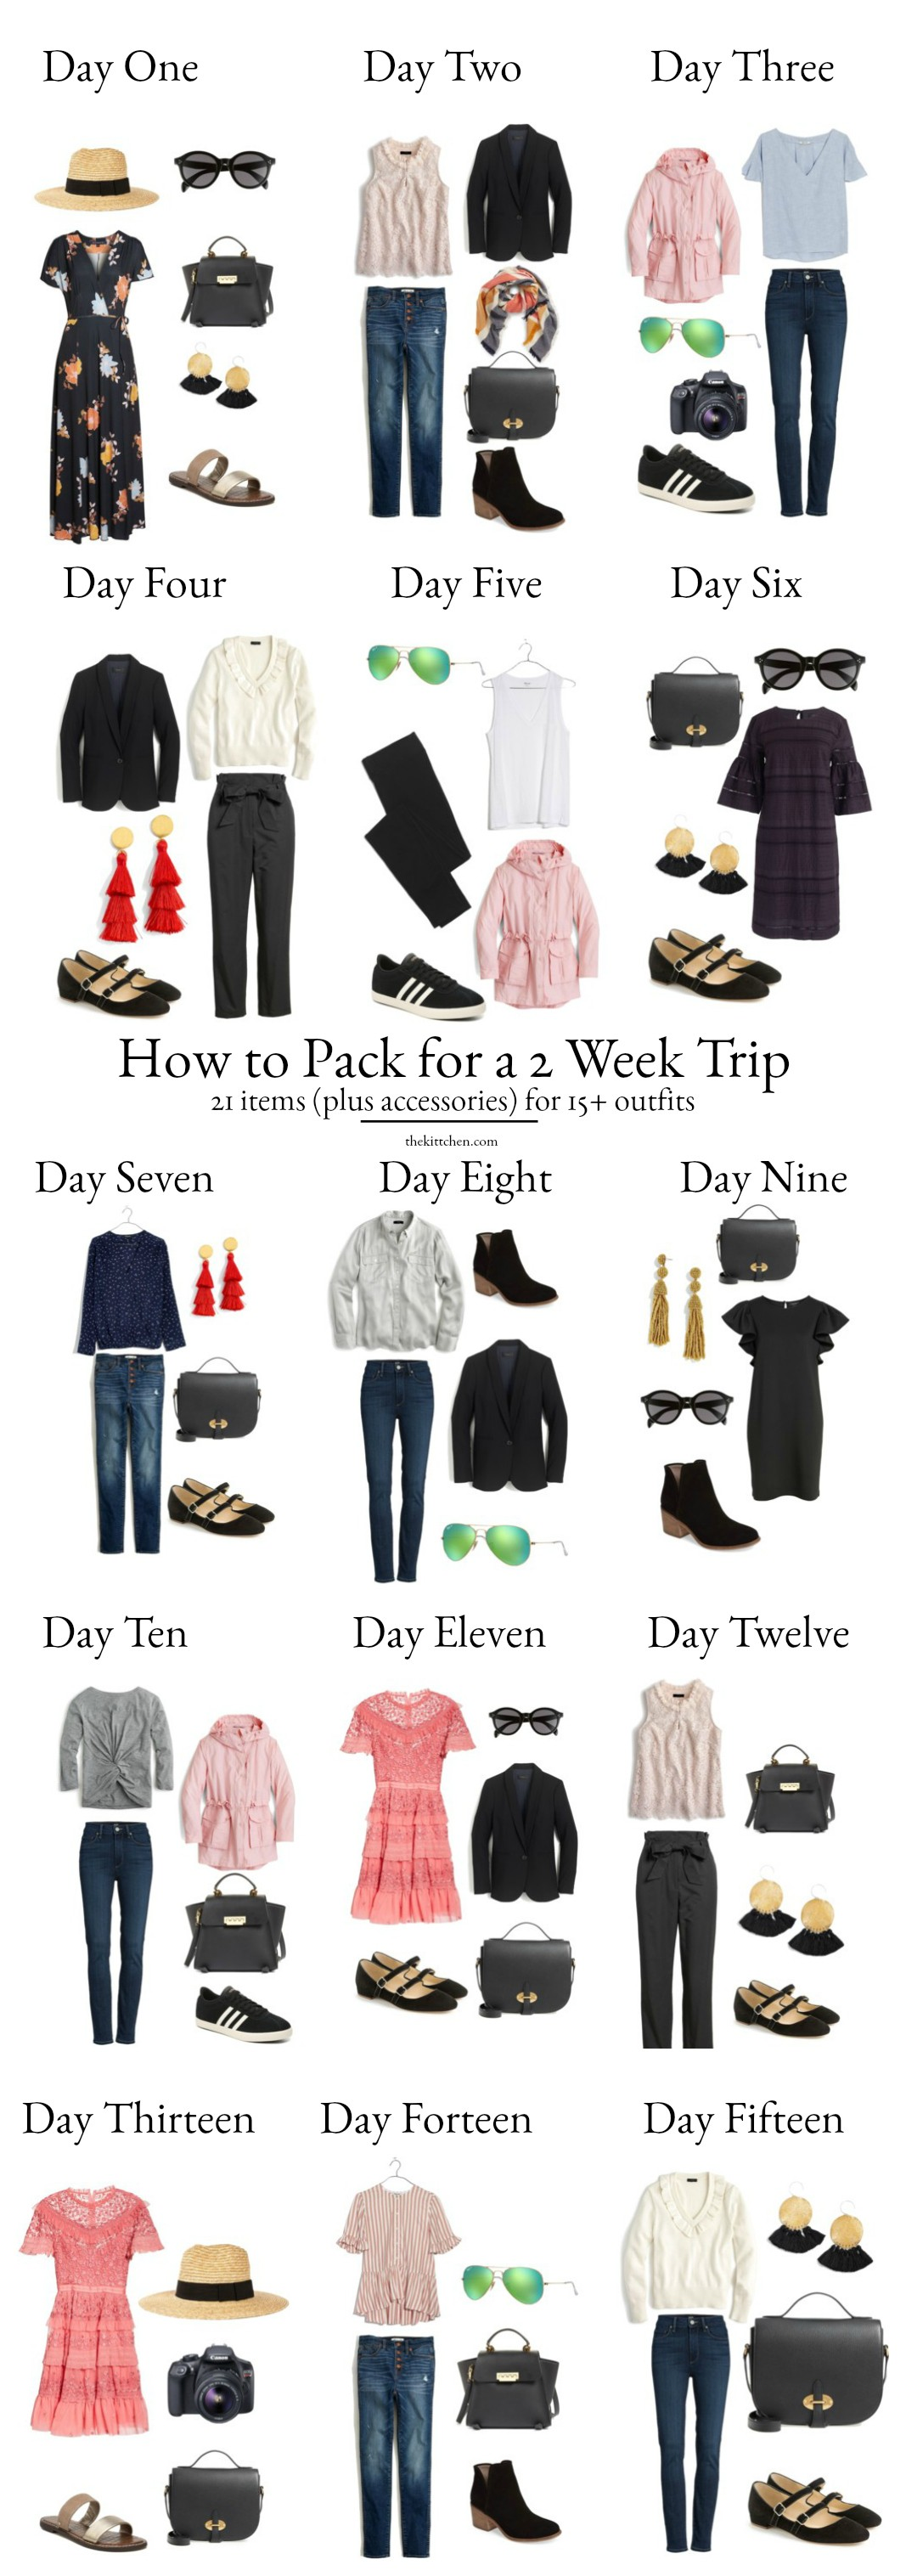 db96f5035f0 A Complete Europe Packing List - What You Need for 2 Weeks in Europe